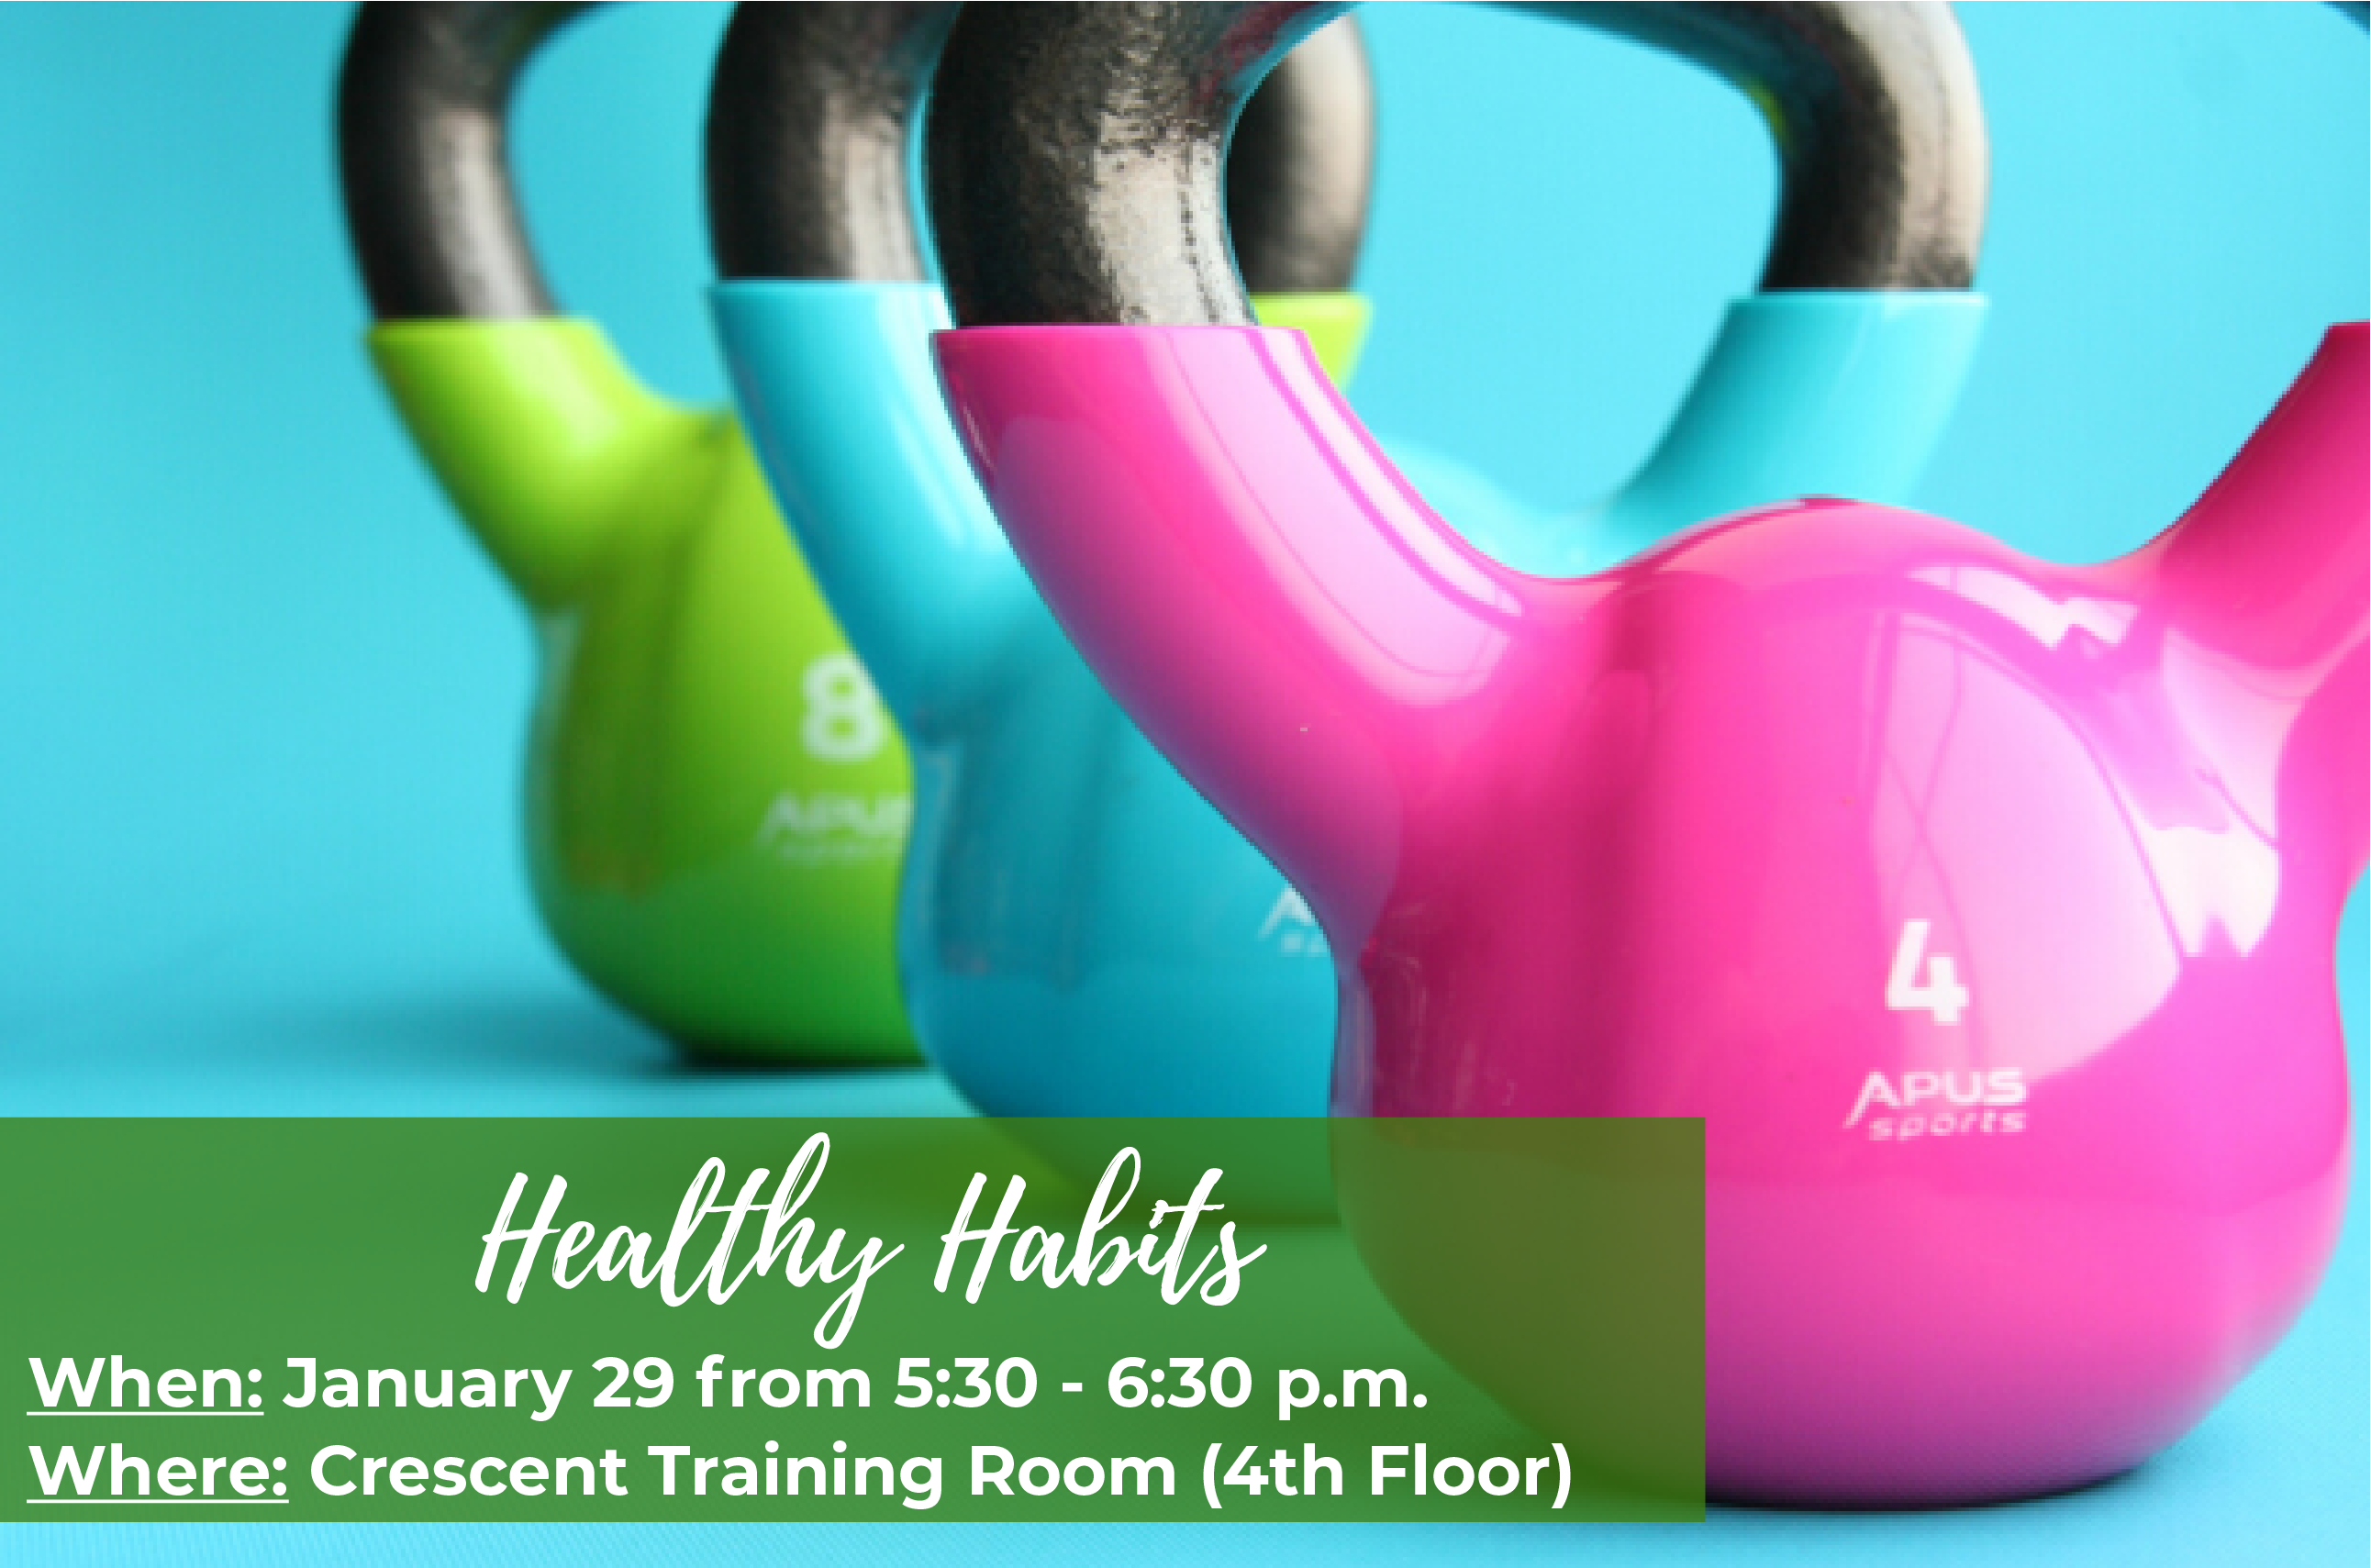 Attend our Healthy Habits session!